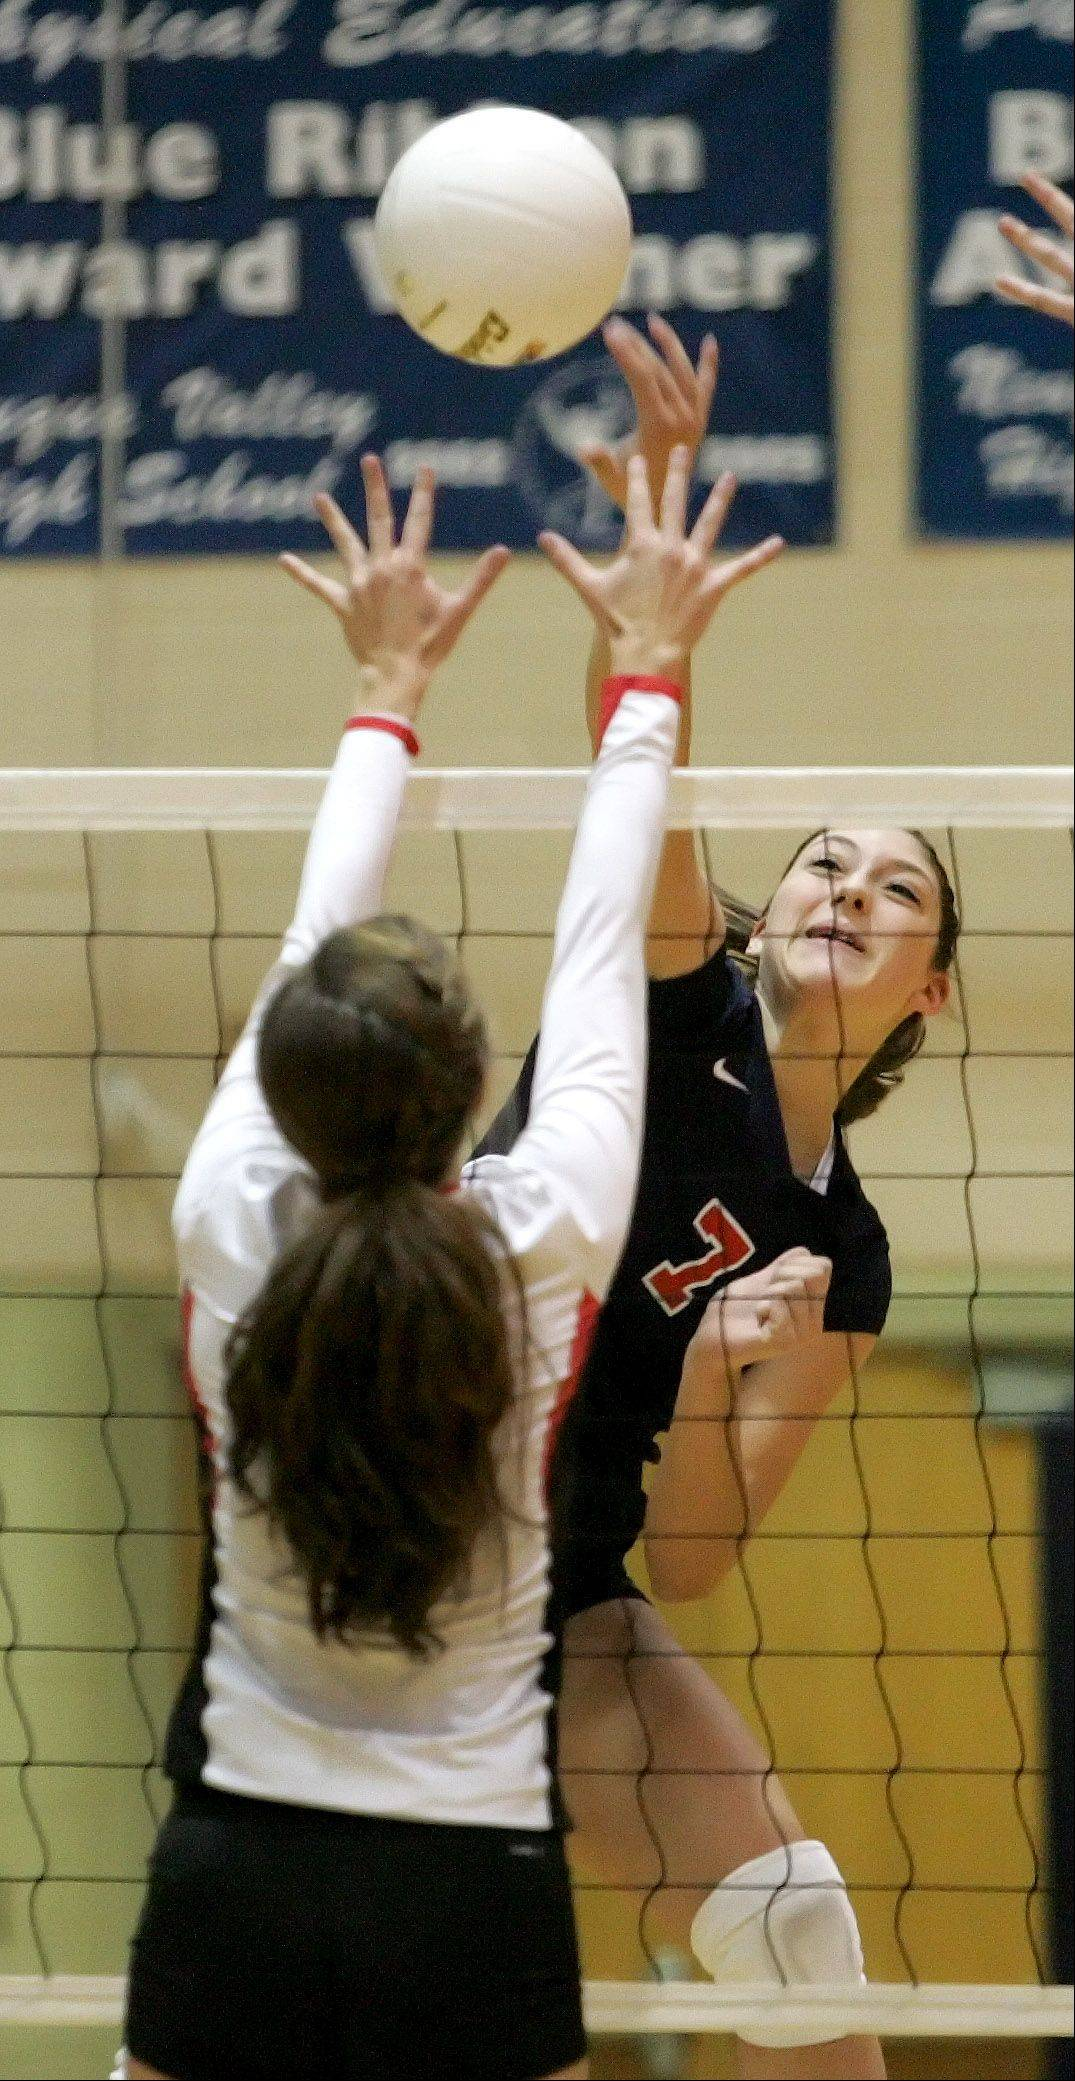 Lauren Carlini of West Aurora tips the ball in action against Benet during girls volleyball Neuqua Valley sectional semifinals in Naperville on Tuesday.